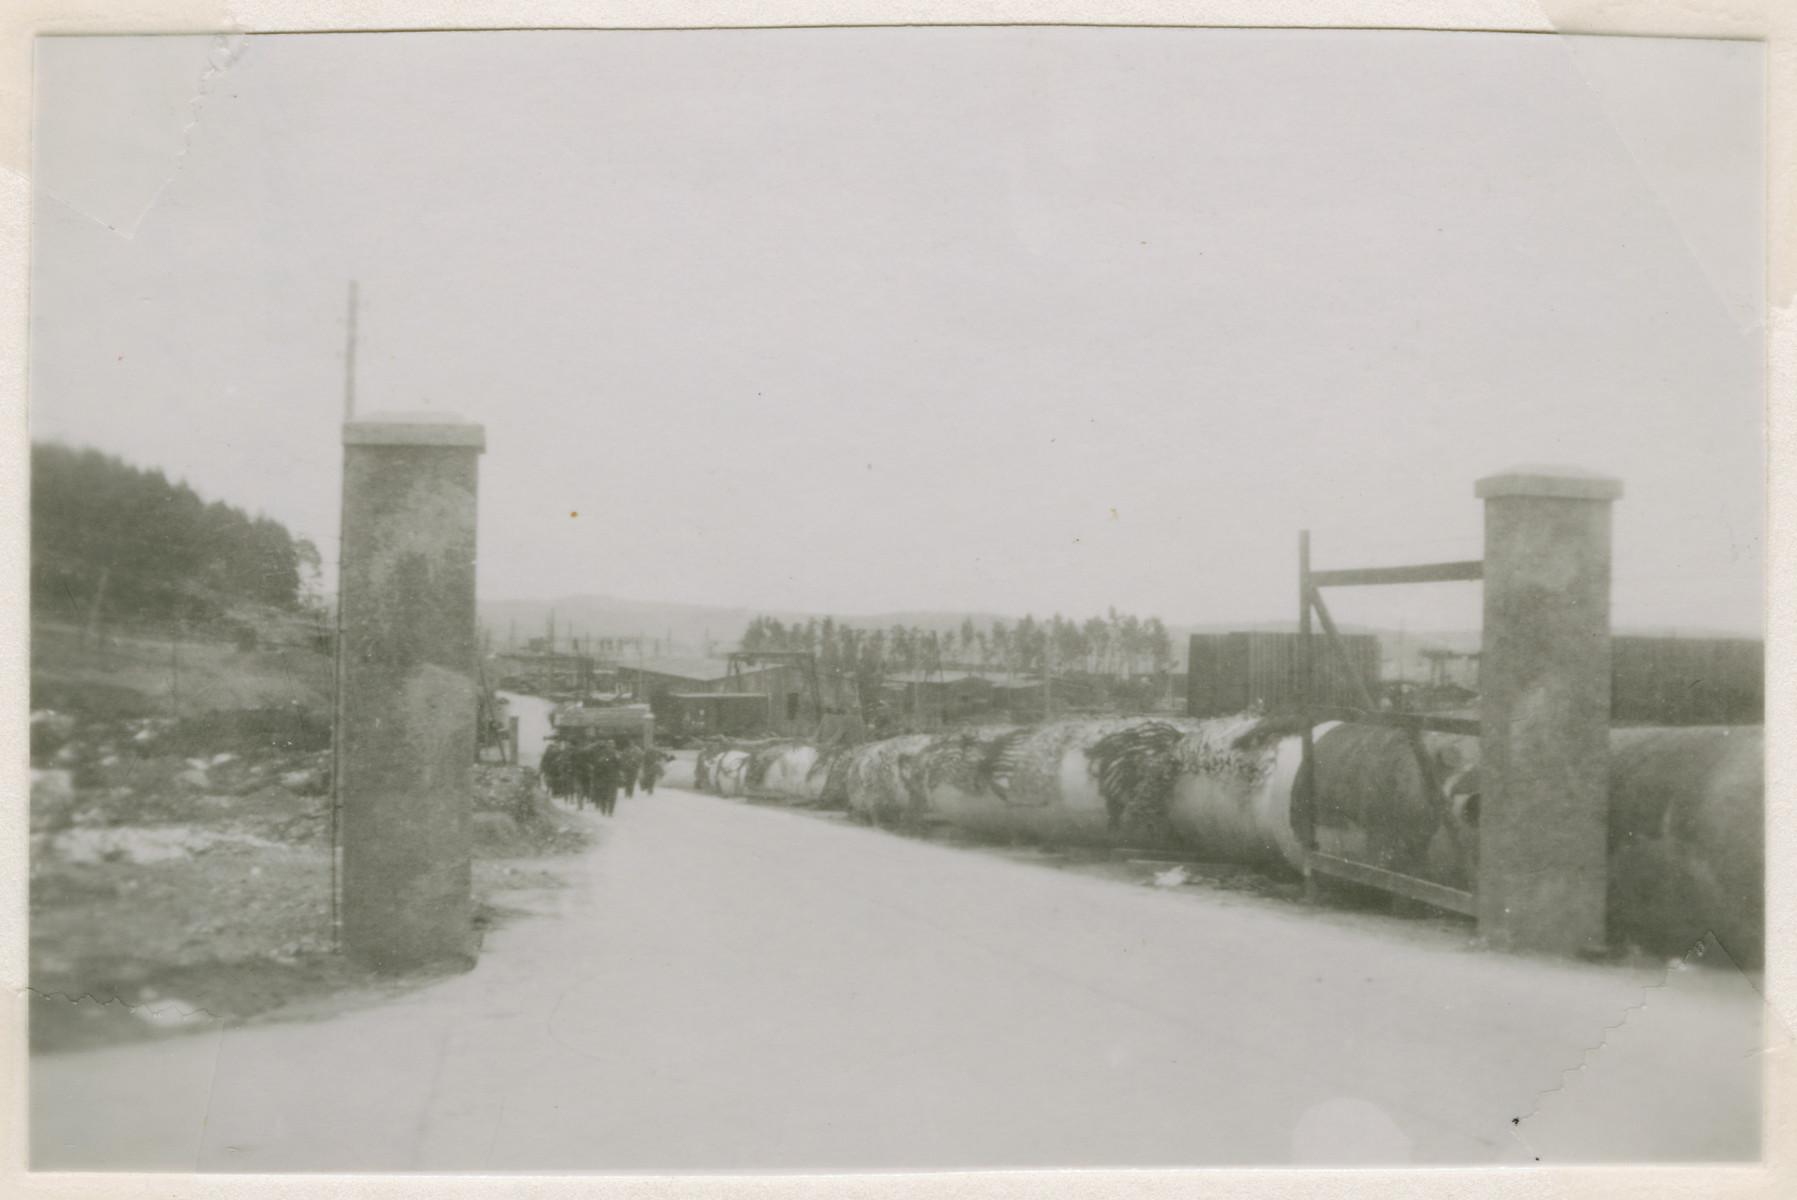 View of the entrance to the V-2 factory and fuel tanks in the Nordhausen concentration camp following liberation.